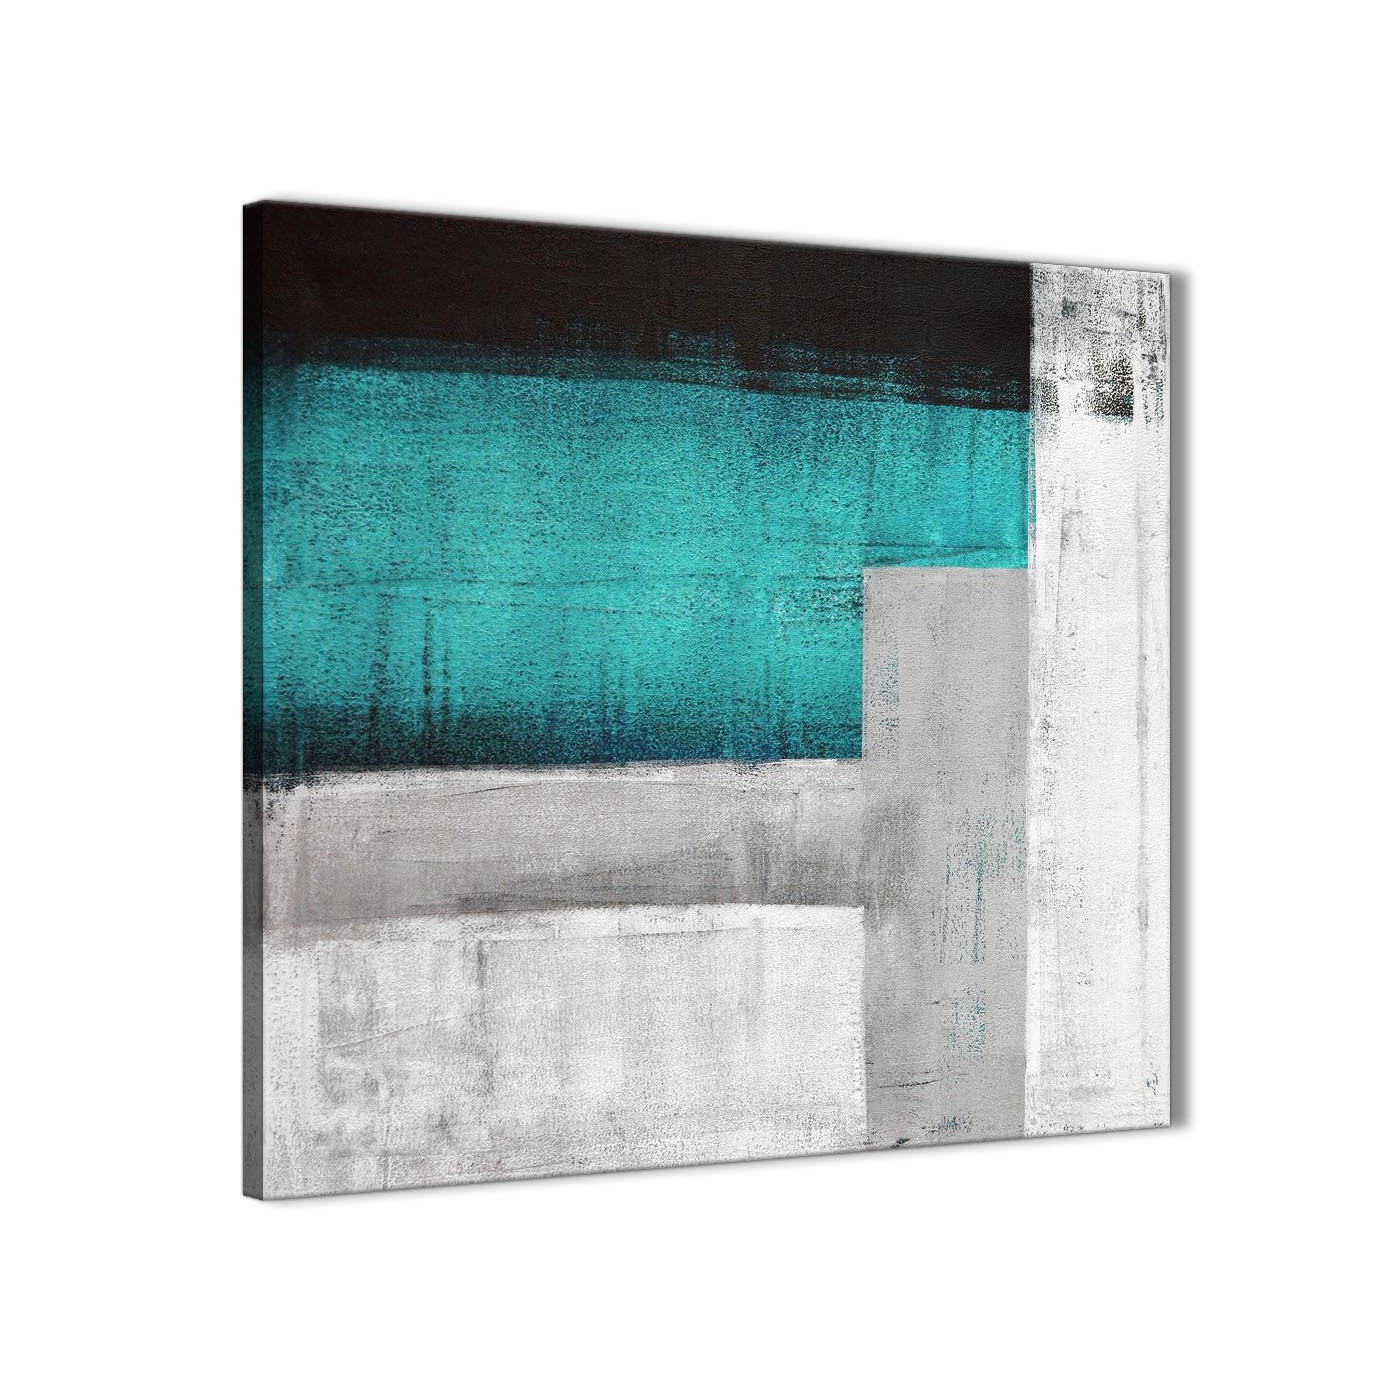 b94493d97f55 Display Gallery Item 3 · Cheap Teal Turquoise Grey Painting Kitchen Canvas  Pictures Accessories - Abstract 1s429s - 49cm Square Print Display Gallery  Item 4